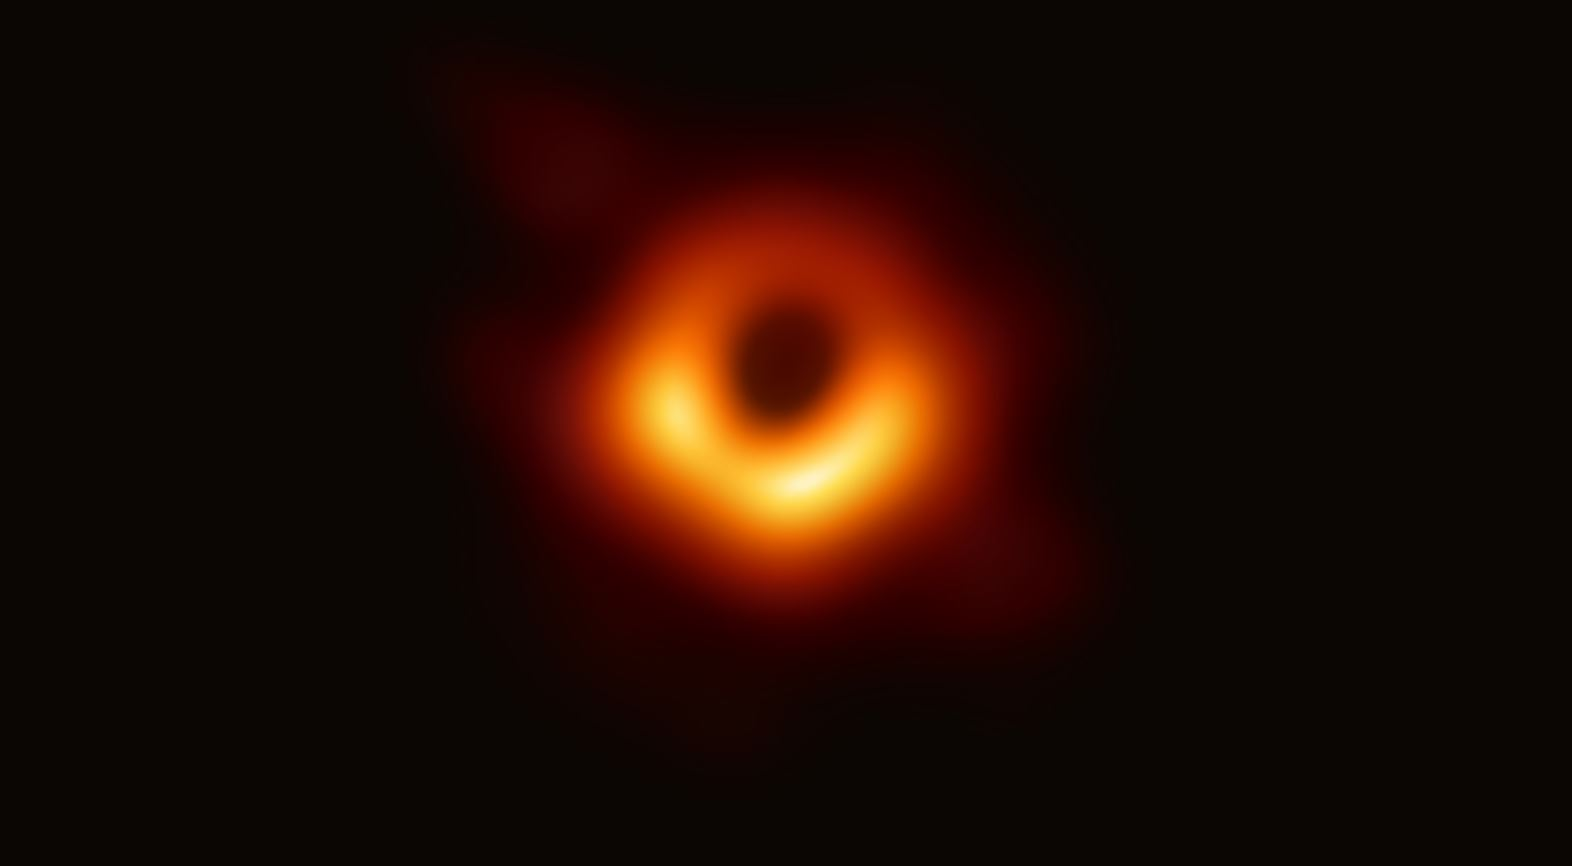 This is where scientists look for a ring of light, which is matter and radiation circling at extreme speeds around a region of darkness representing the actual black hole. (Image: Event Horizon Telescope collaboration)